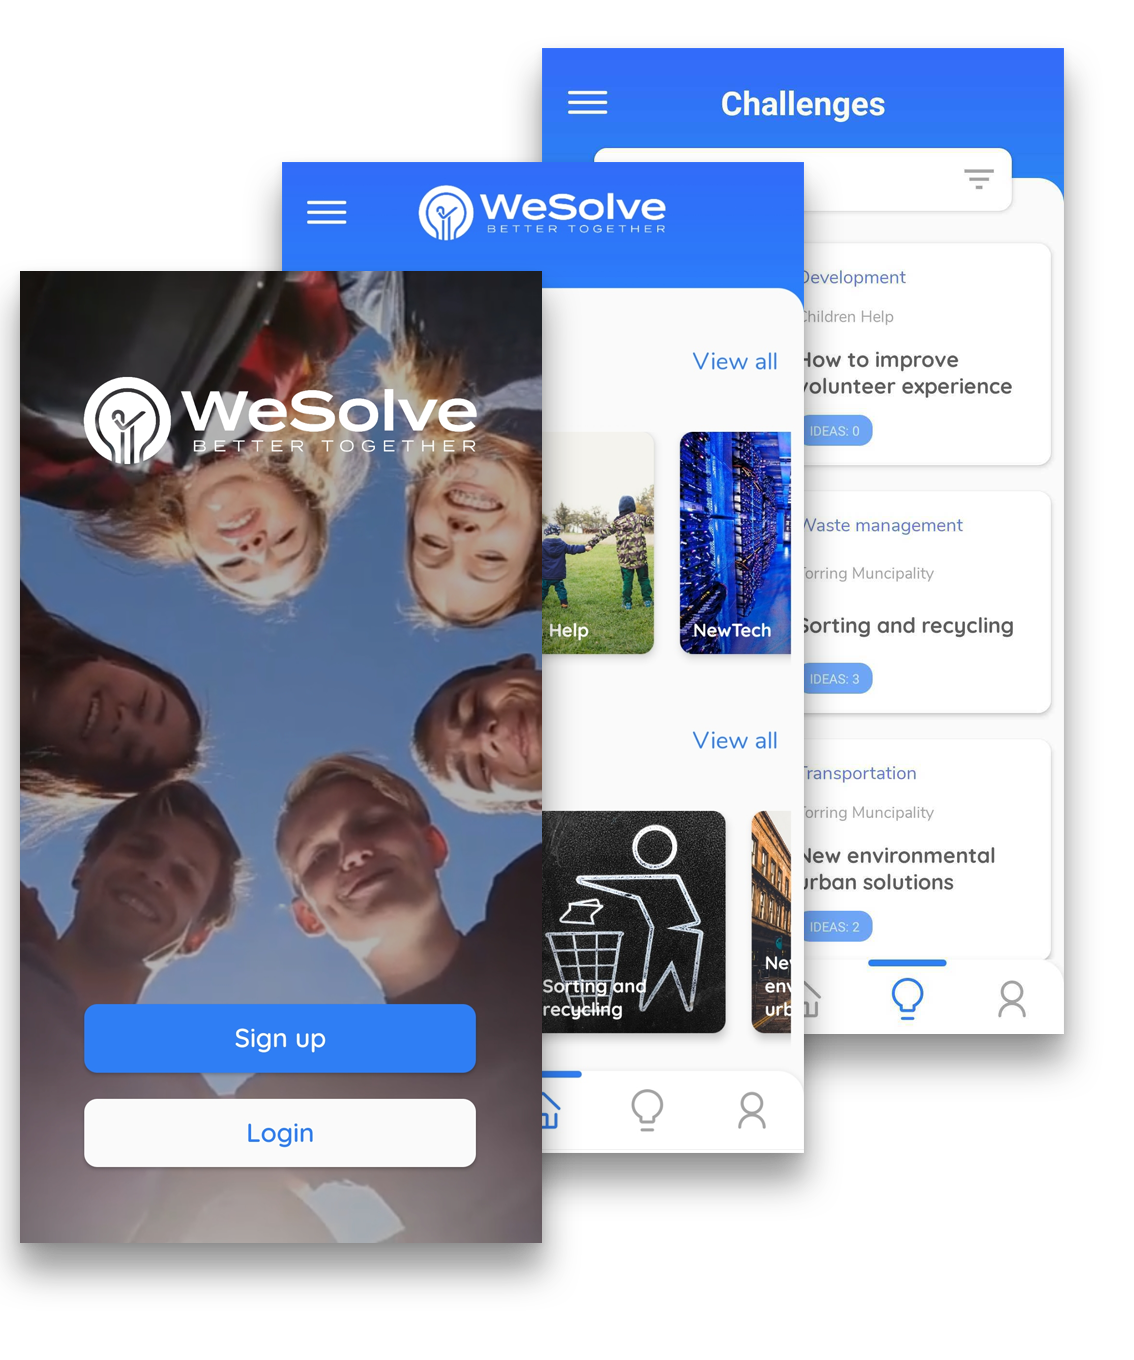 WeSolve